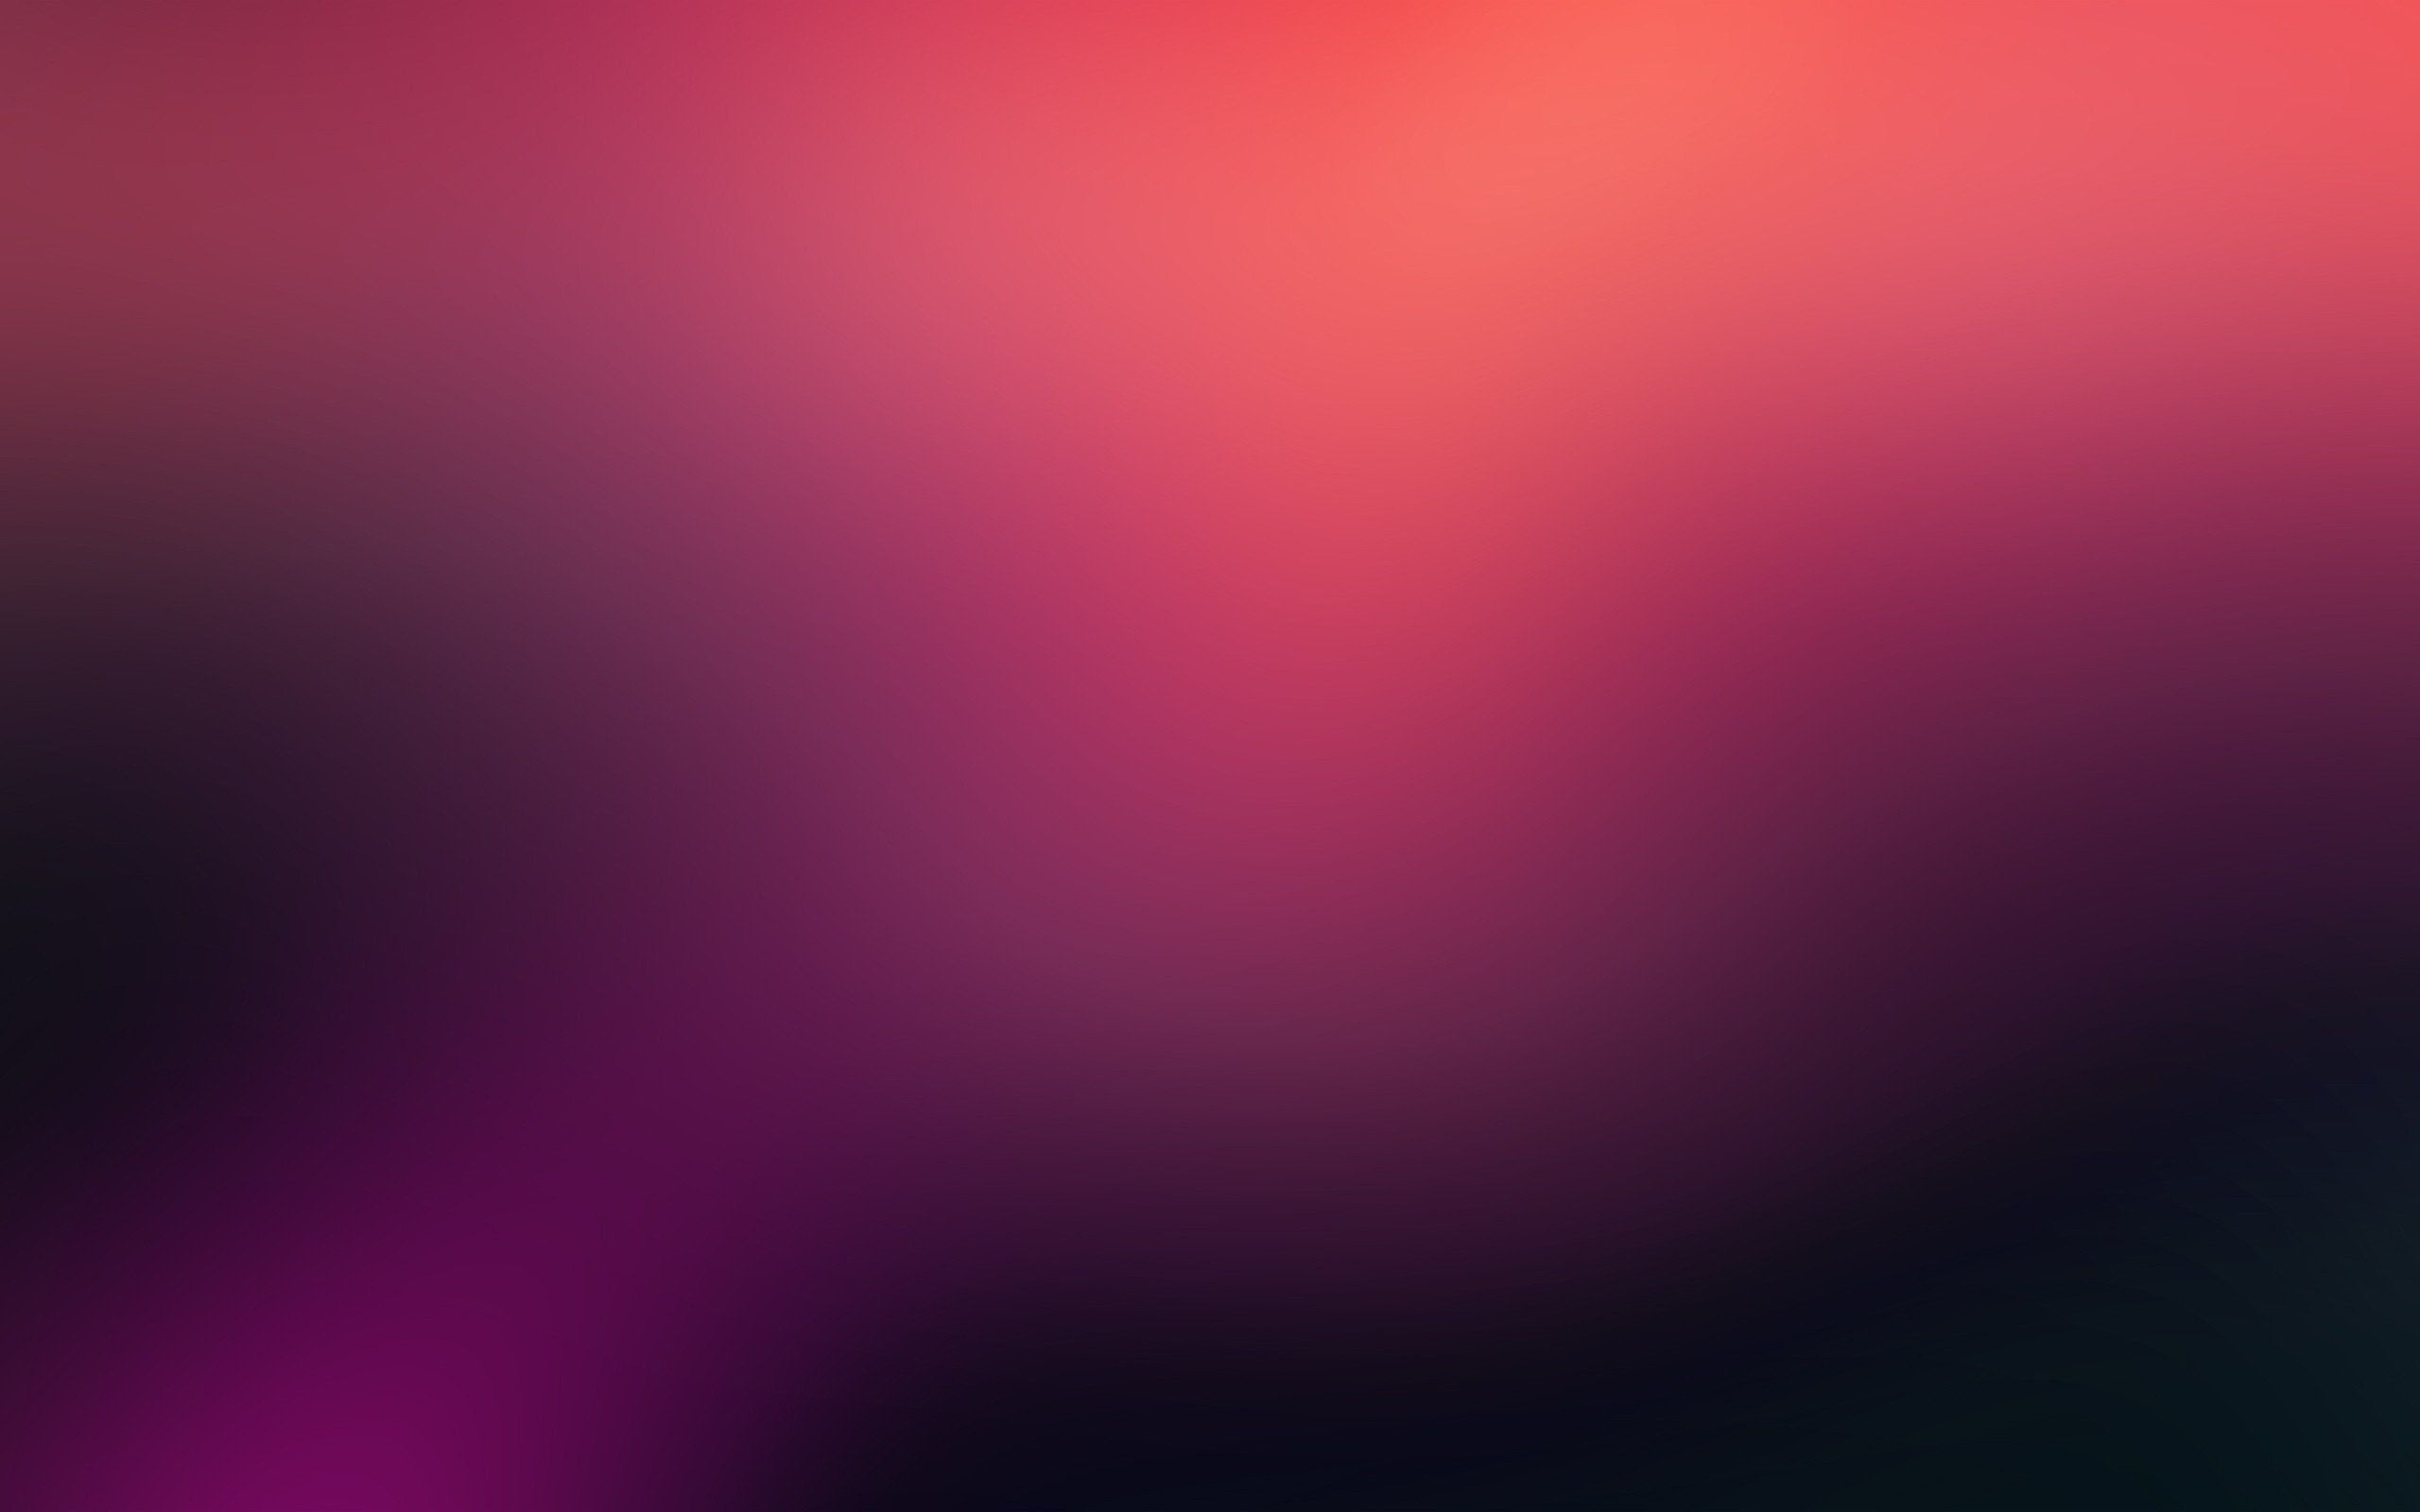 aurora gaussian blur blurred colors smooth x wallpaper